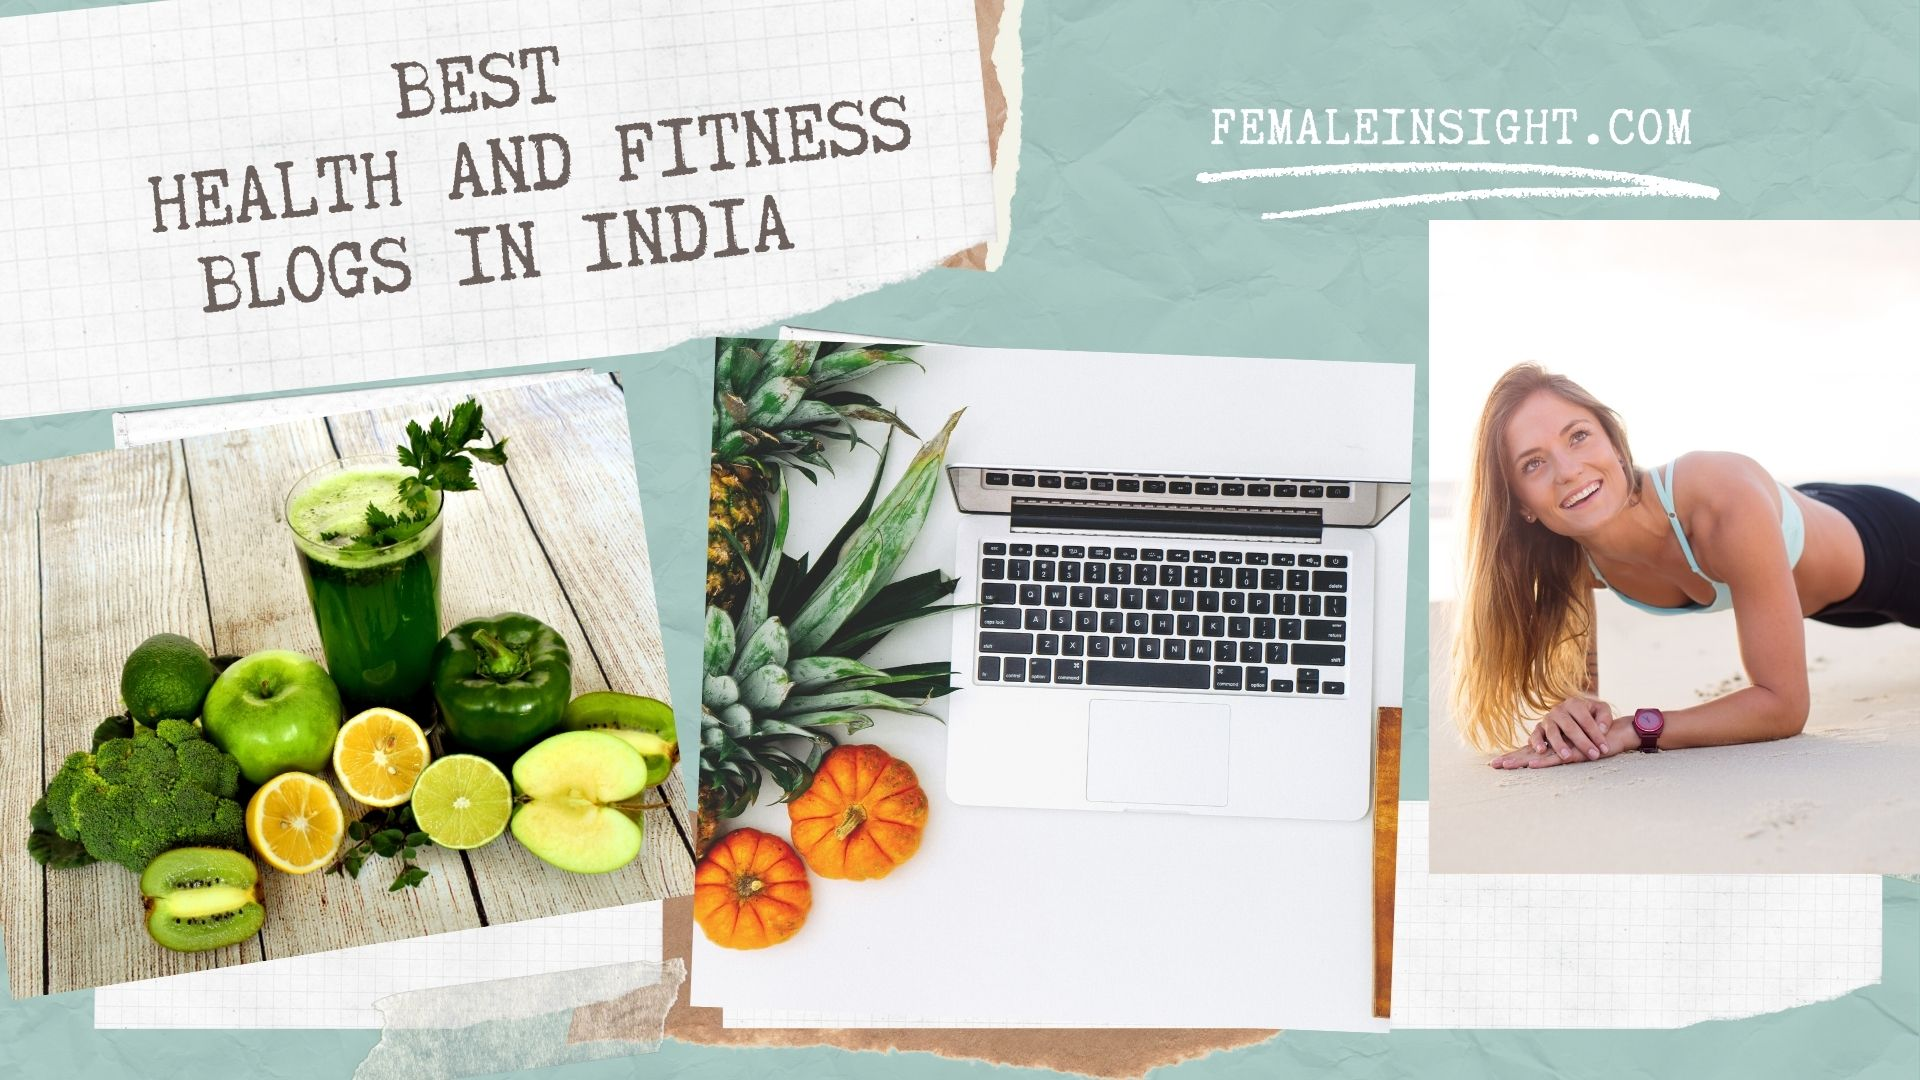 Best Health and Fitness Blogs